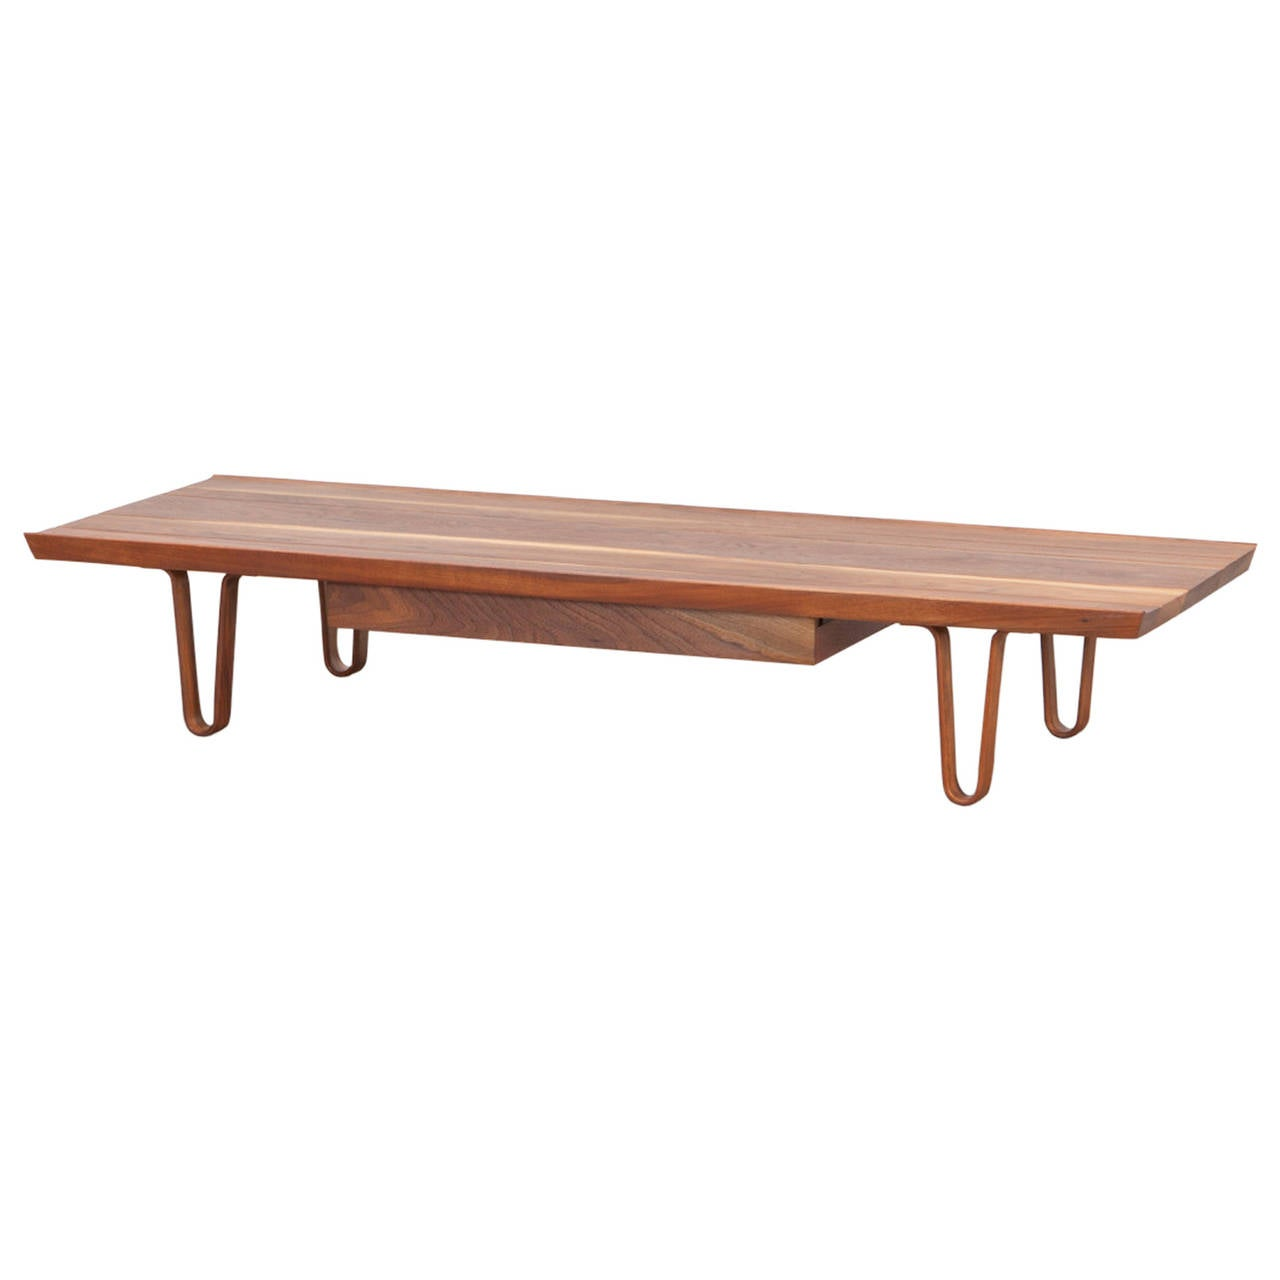 Edward Wormley Bench with Drawer For Sale at 1stdibs